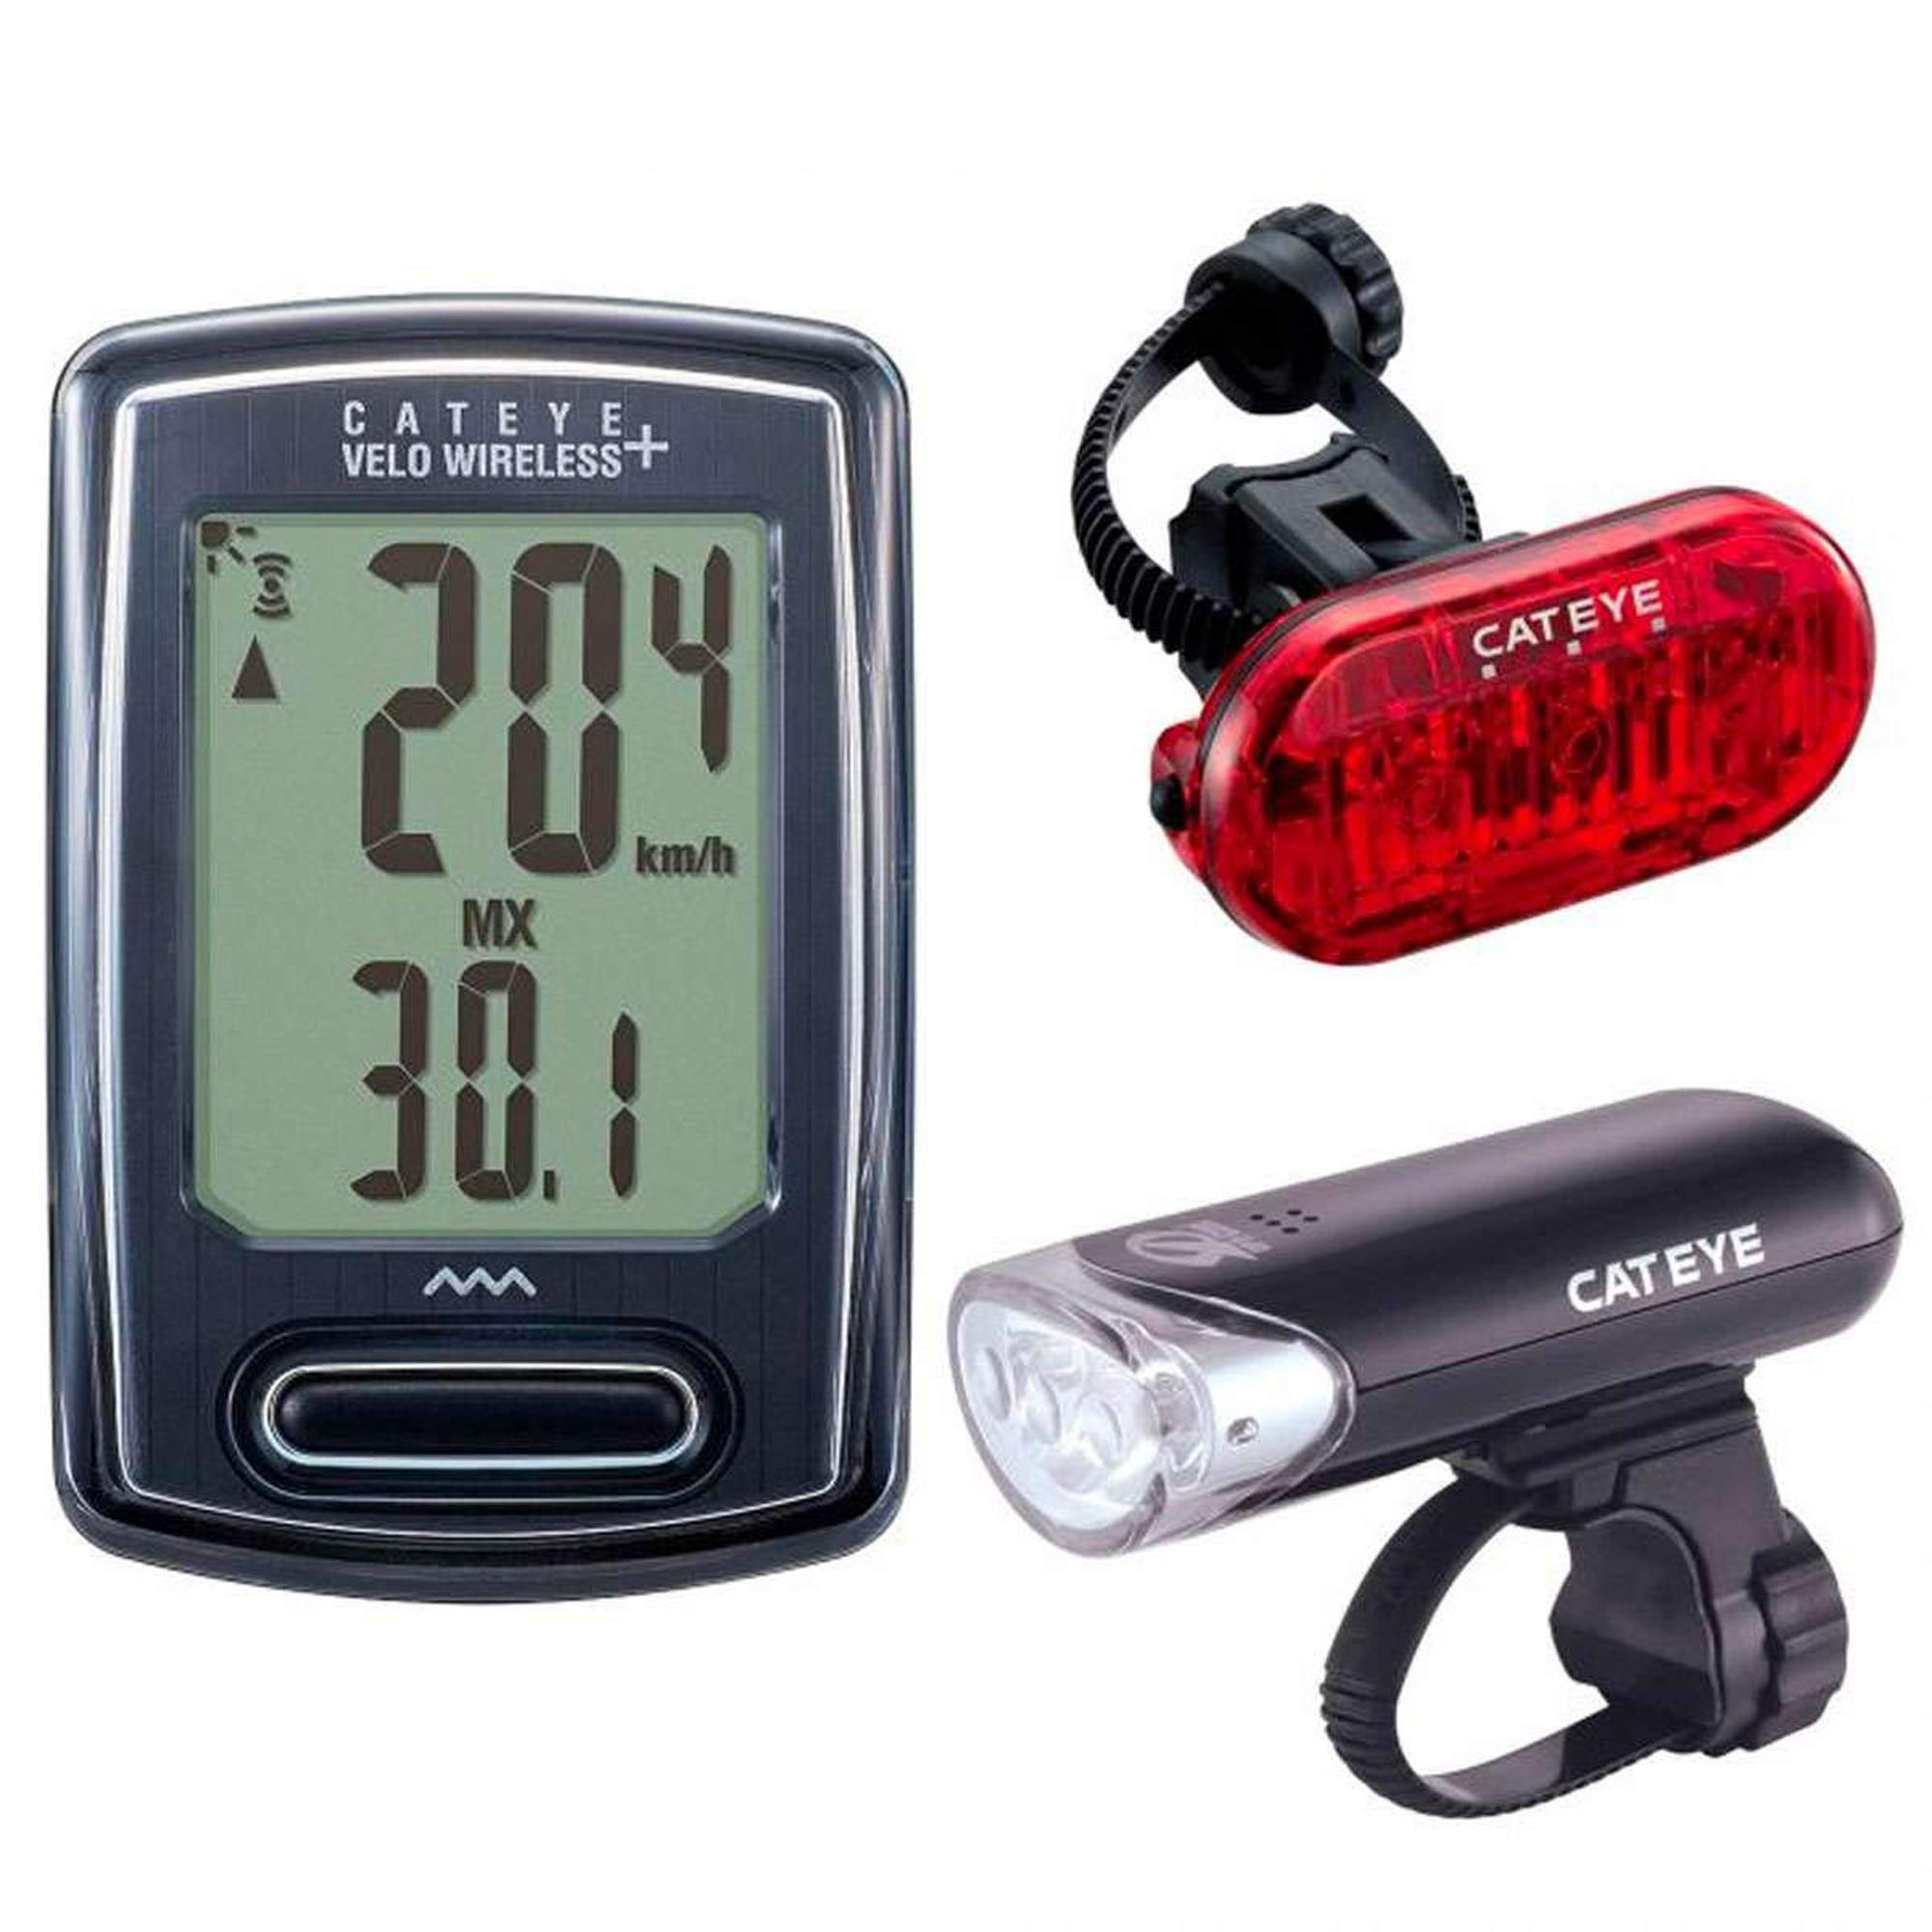 CatEye - Bike Headlight, Tail Light and Computer Set, Velo Wireless, HL-EL135 and Omni 3 LED, Includes Mounting Hardware